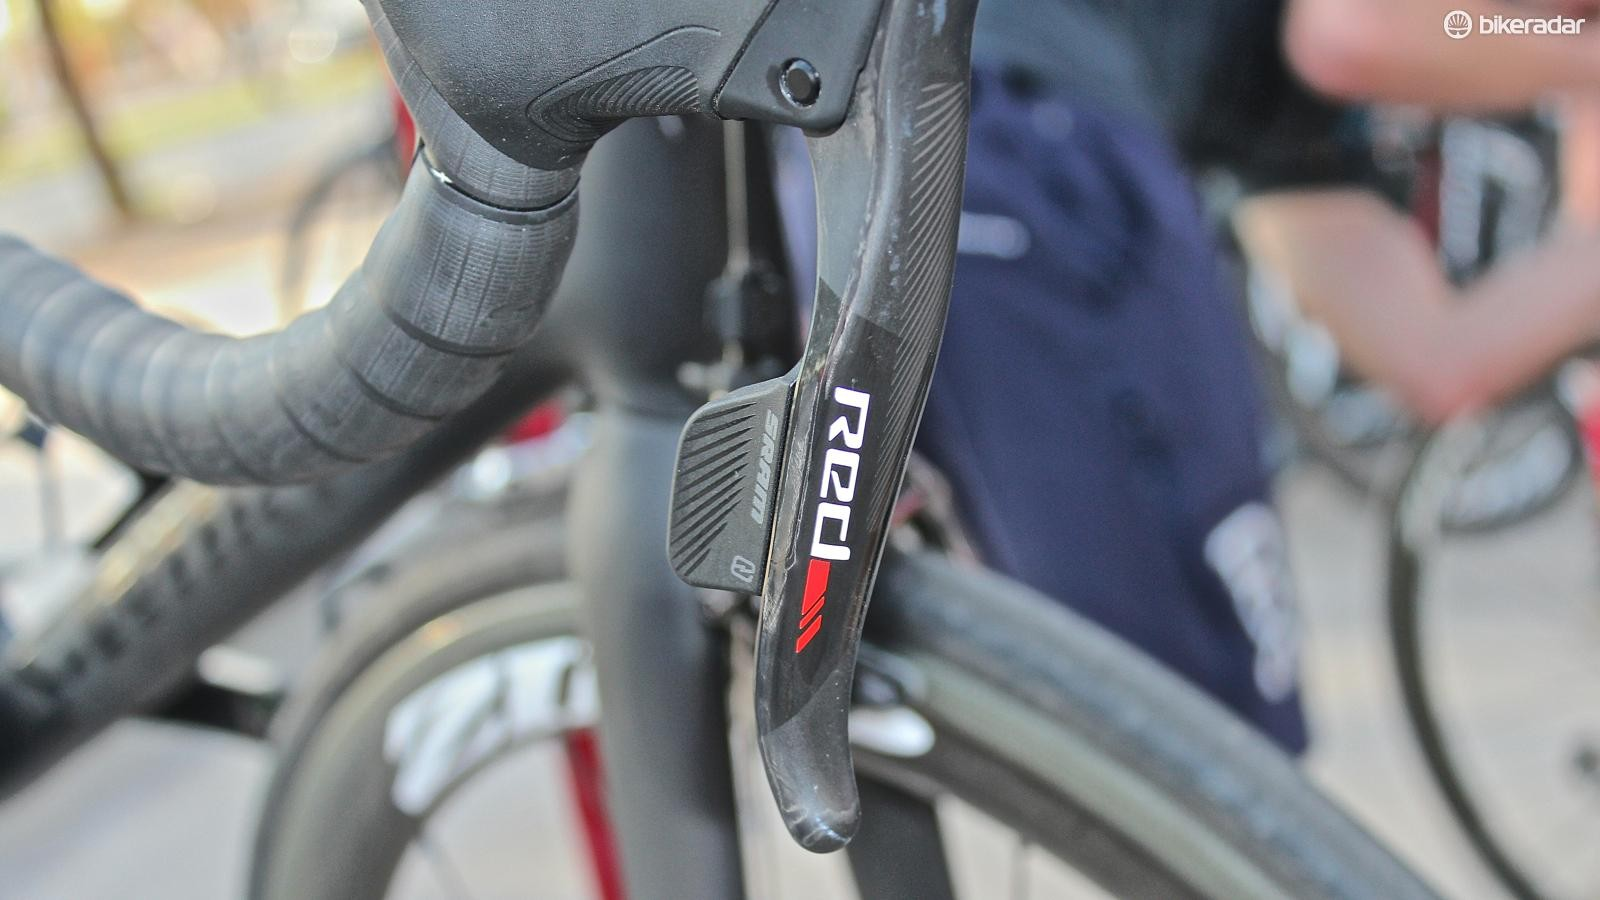 SRAM Red eTap uses a single wireless button on each lever to control the front and rear derailleurs